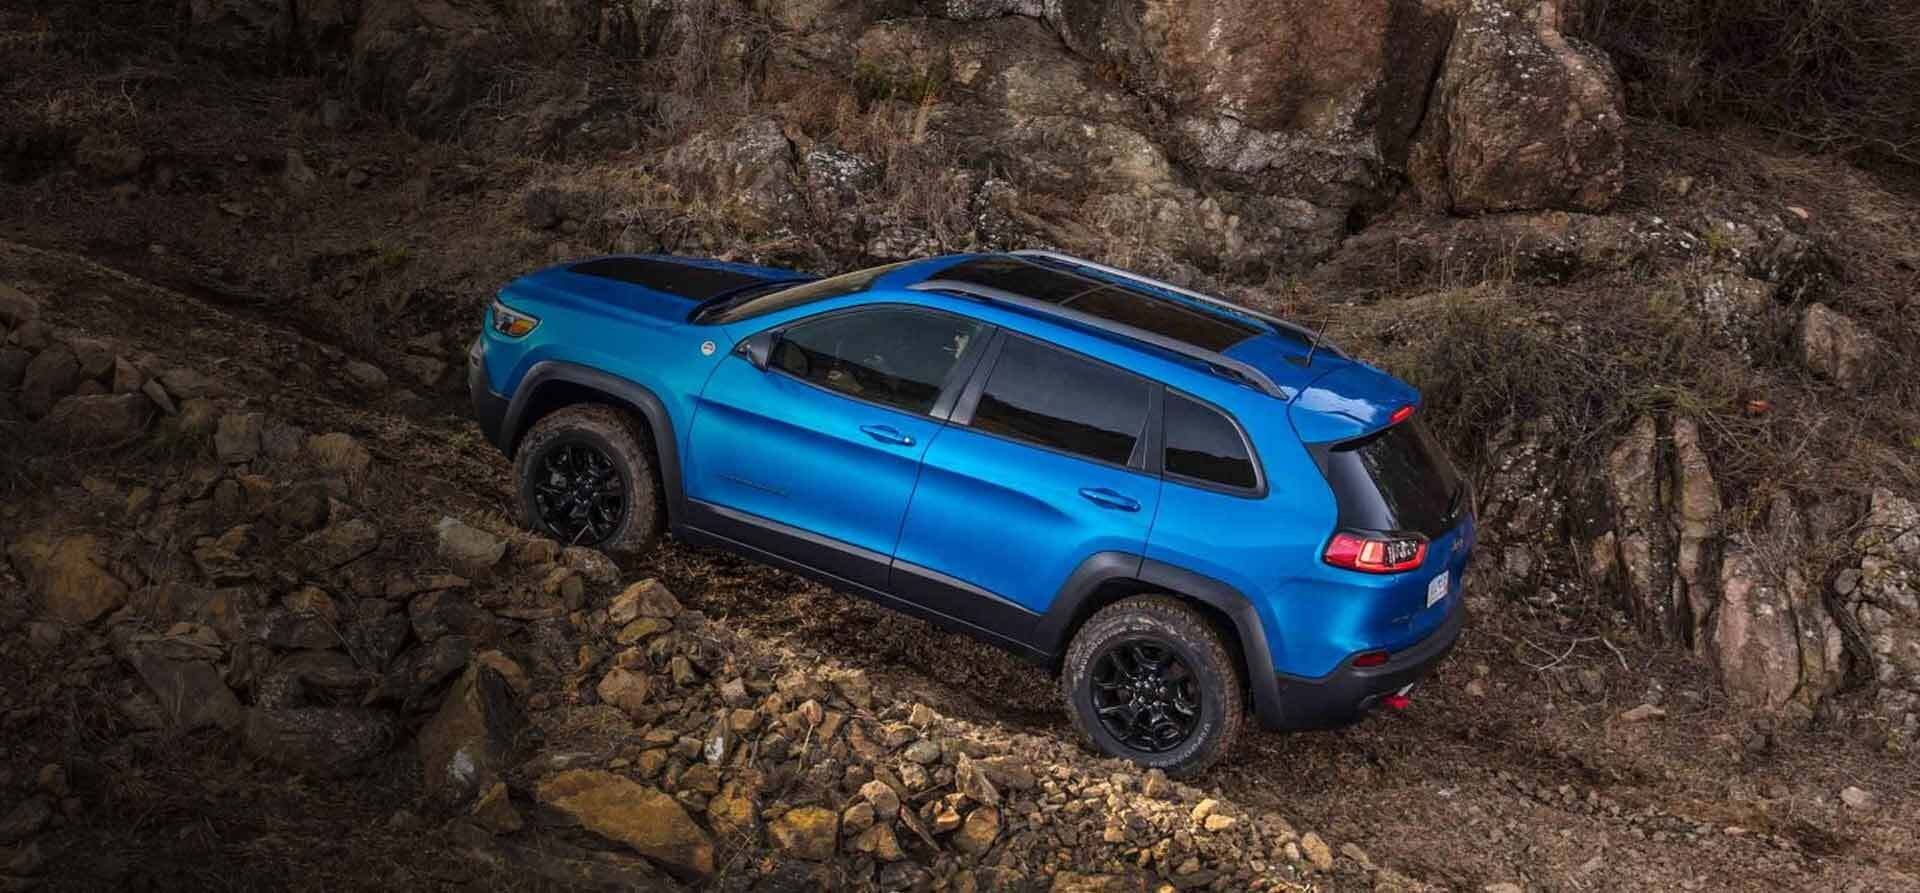 Chrysler, Jeep Dealership Braintree MA | Used Cars Quirk